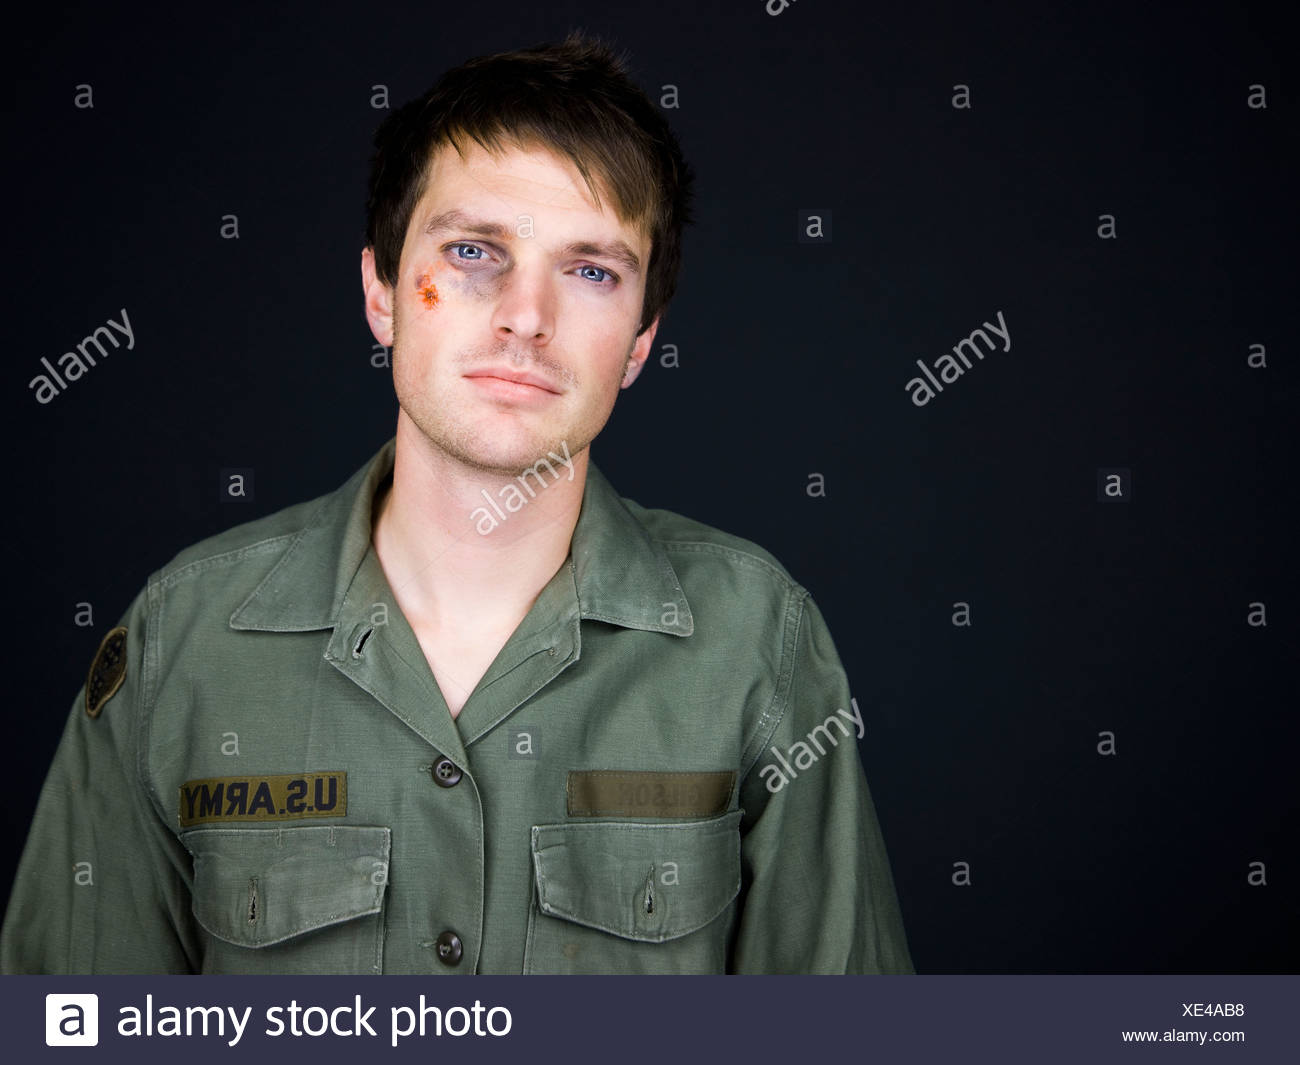 soldier with a black eye - Stock Image